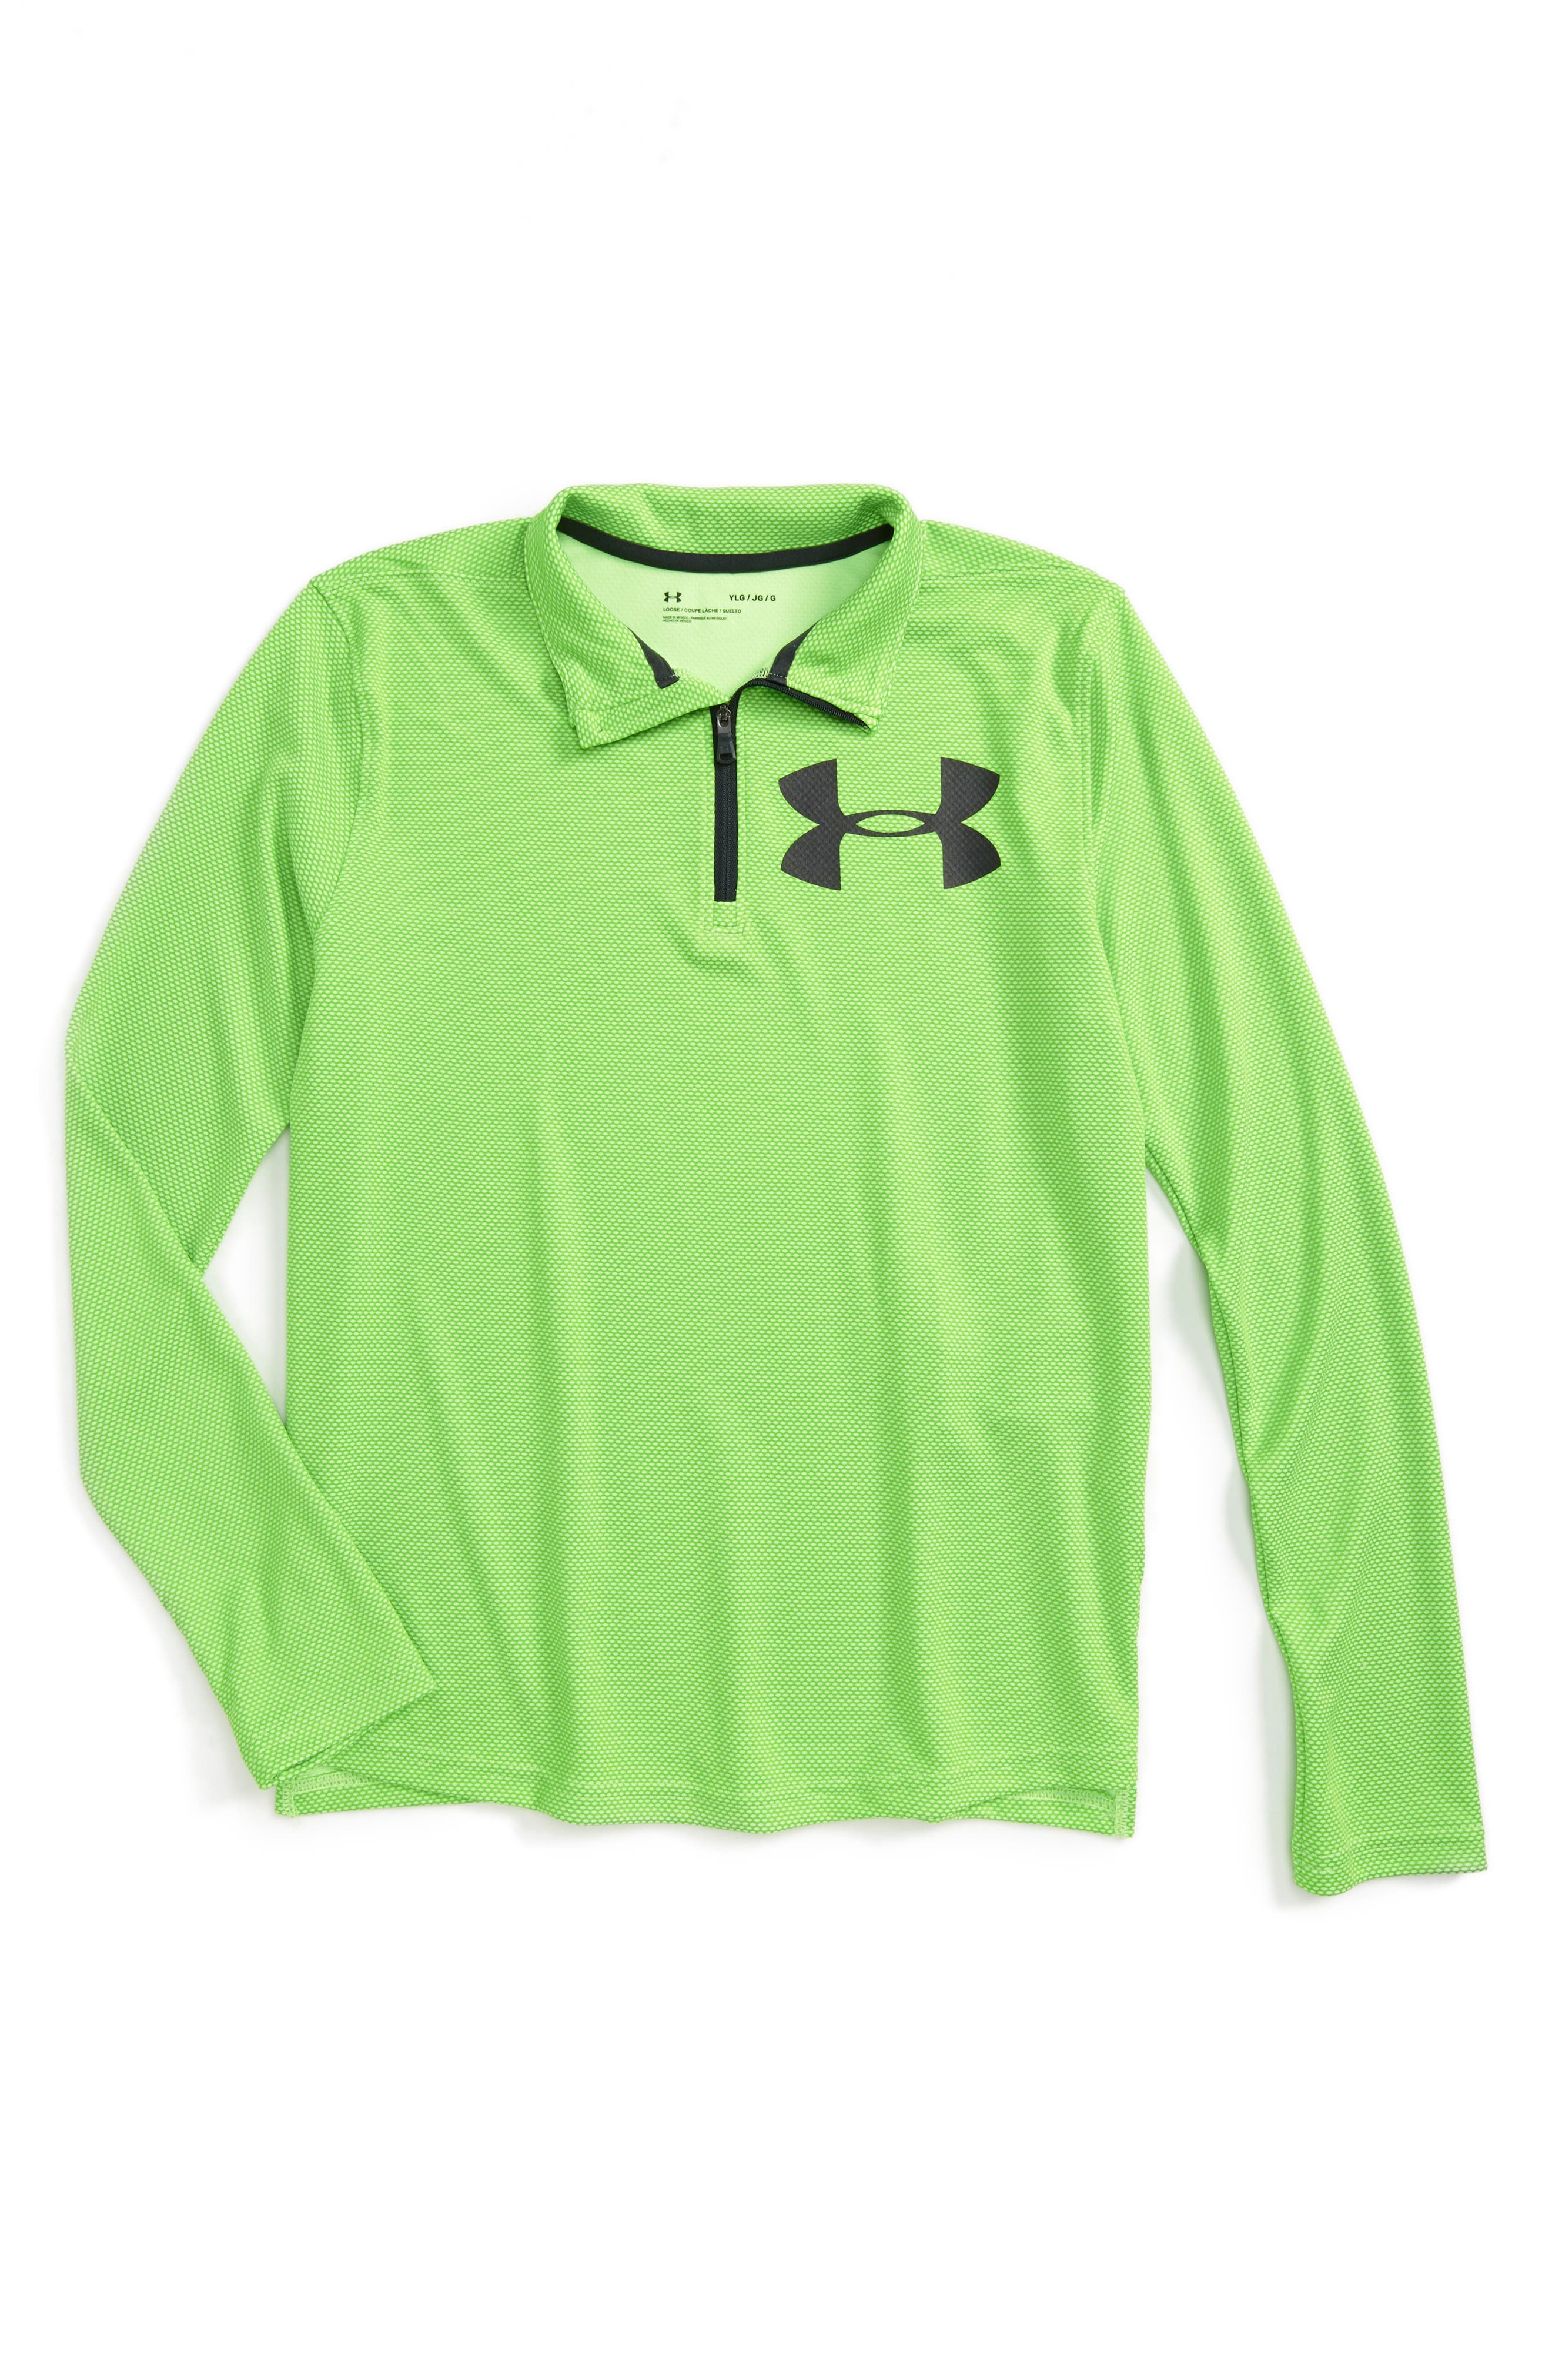 Textured Quarter Zip Top,                         Main,                         color, Quirky Lime/ Anthracite